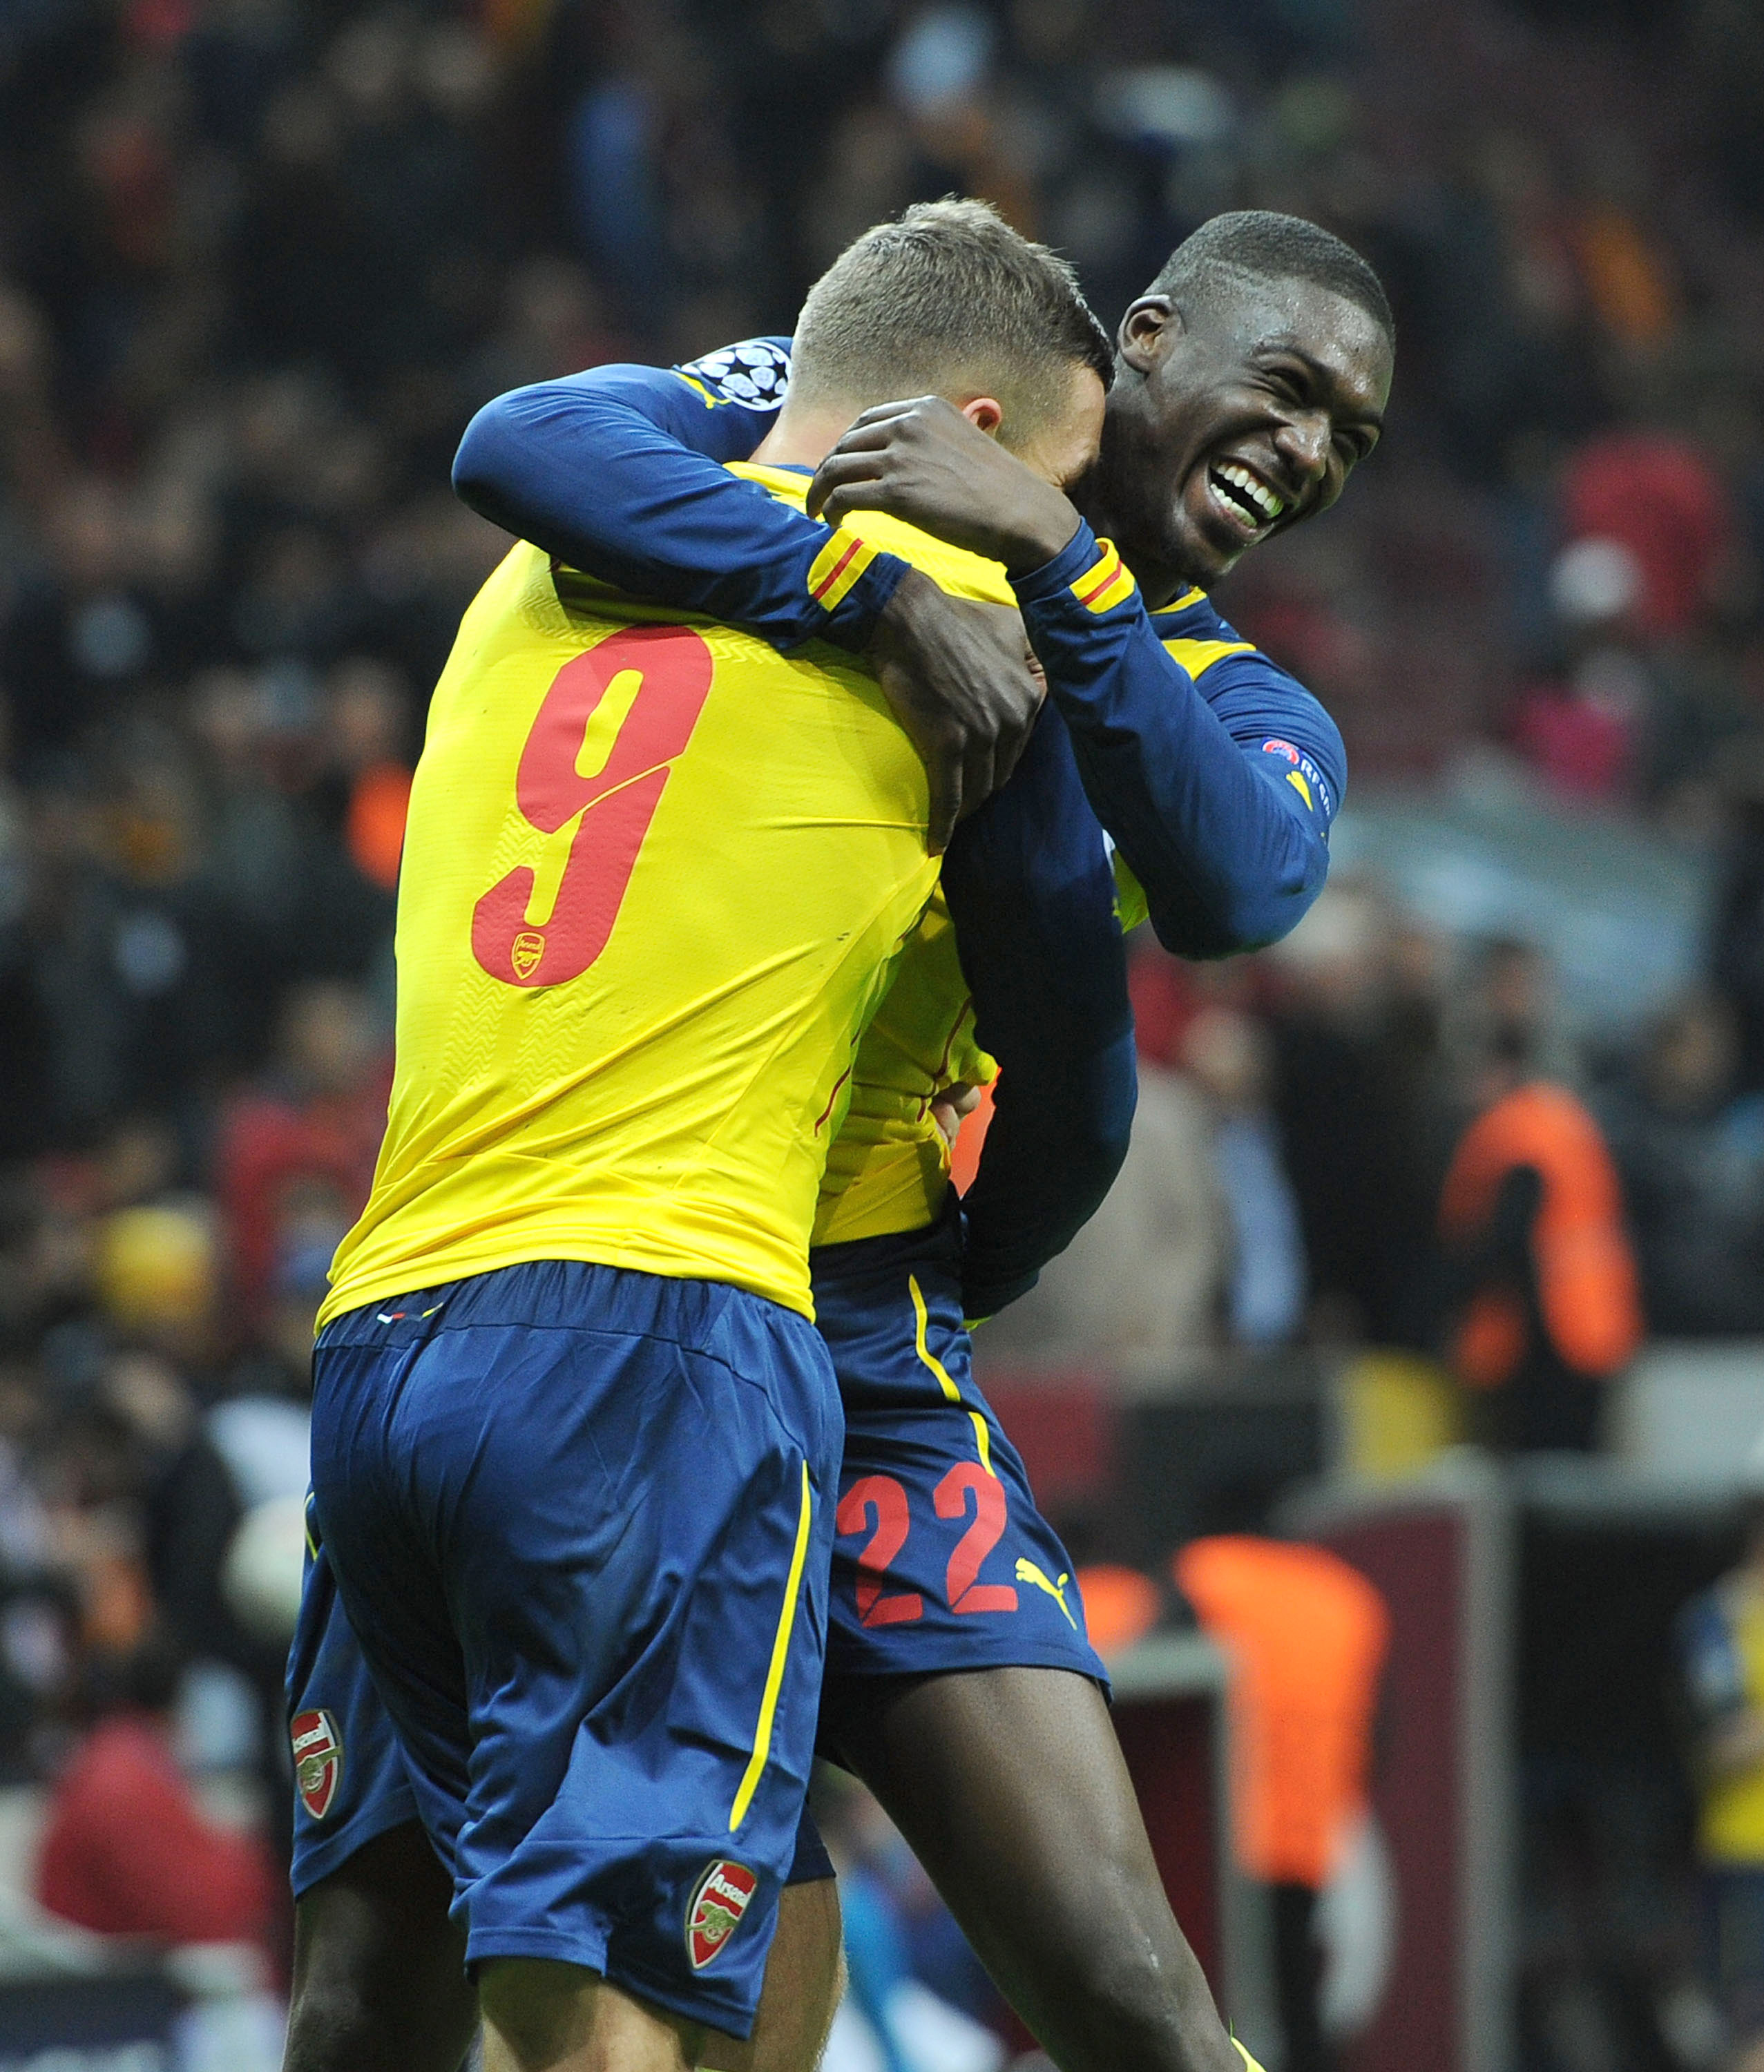 Arsene Wenger confirms Lukas Podolski and Yaya Sanogo heading for Arsenal exit